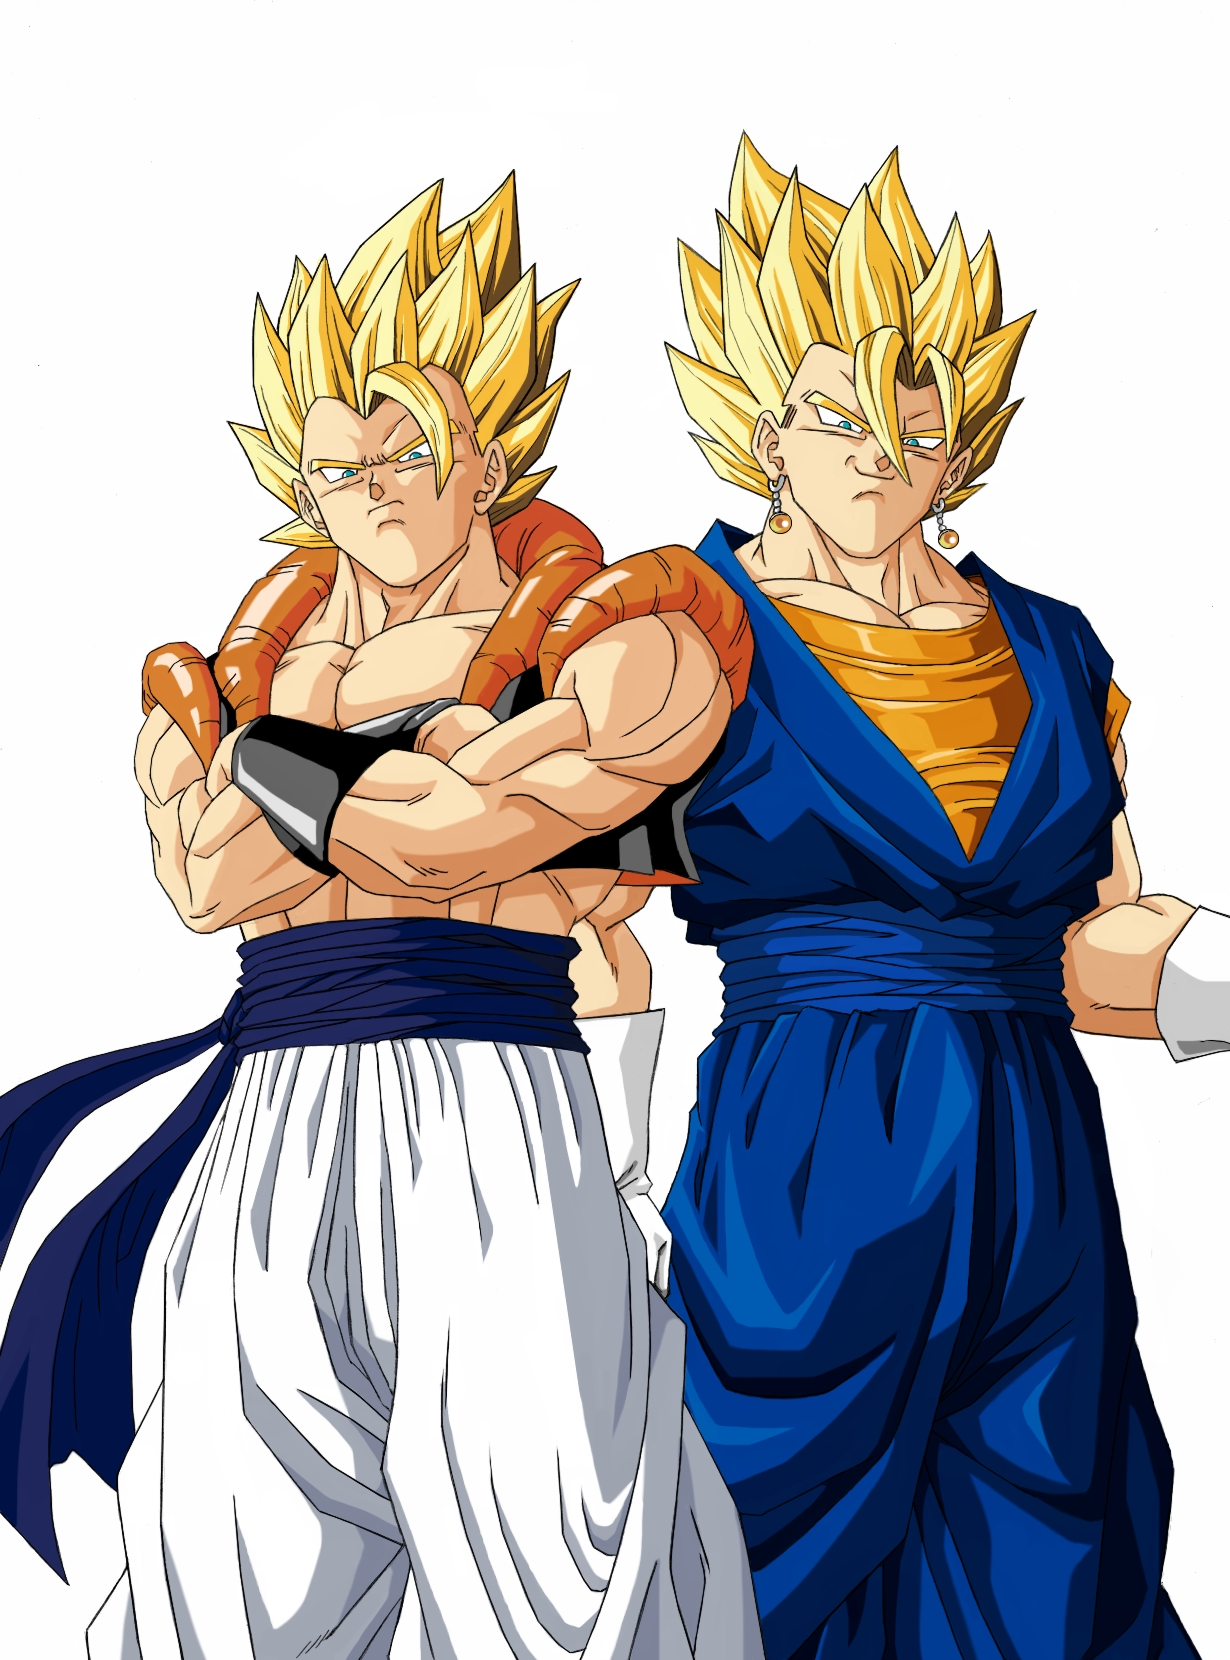 Dragon Ball Z Images on Fanpop